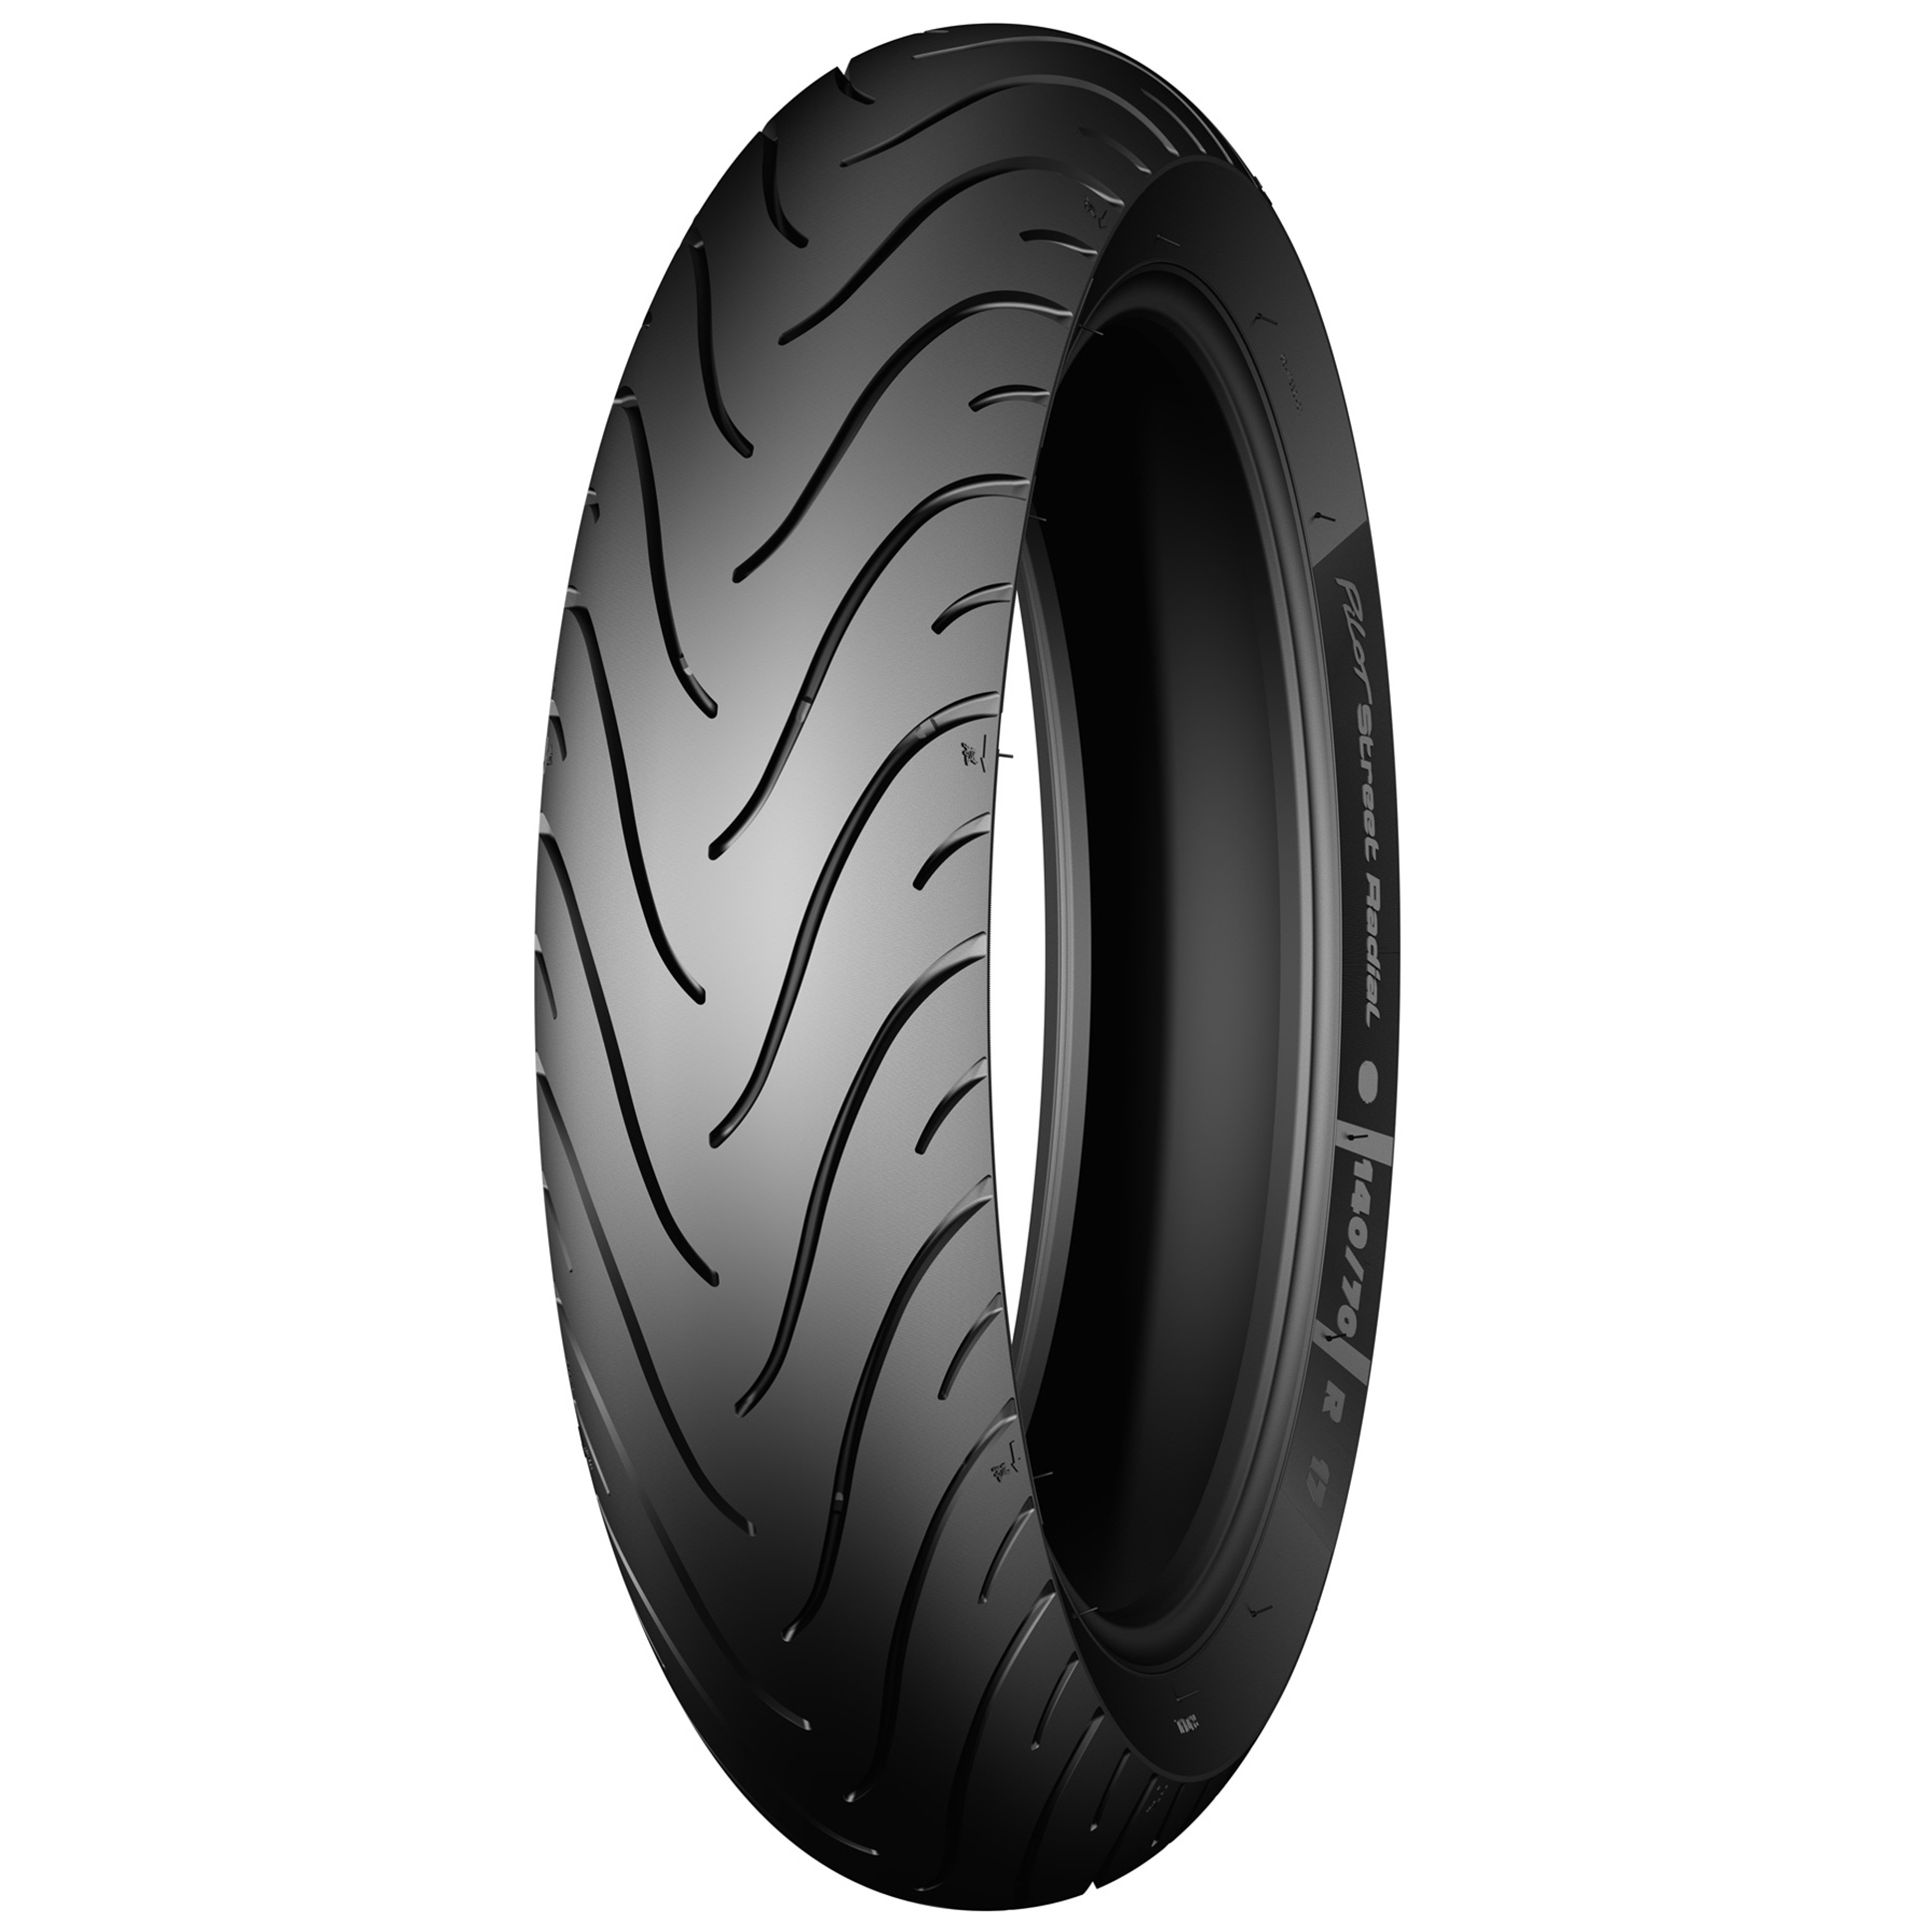 Michelin PILOT STREET 150/60 R 17 Tubeless 66 H Rear Two-Wheeler Tyre